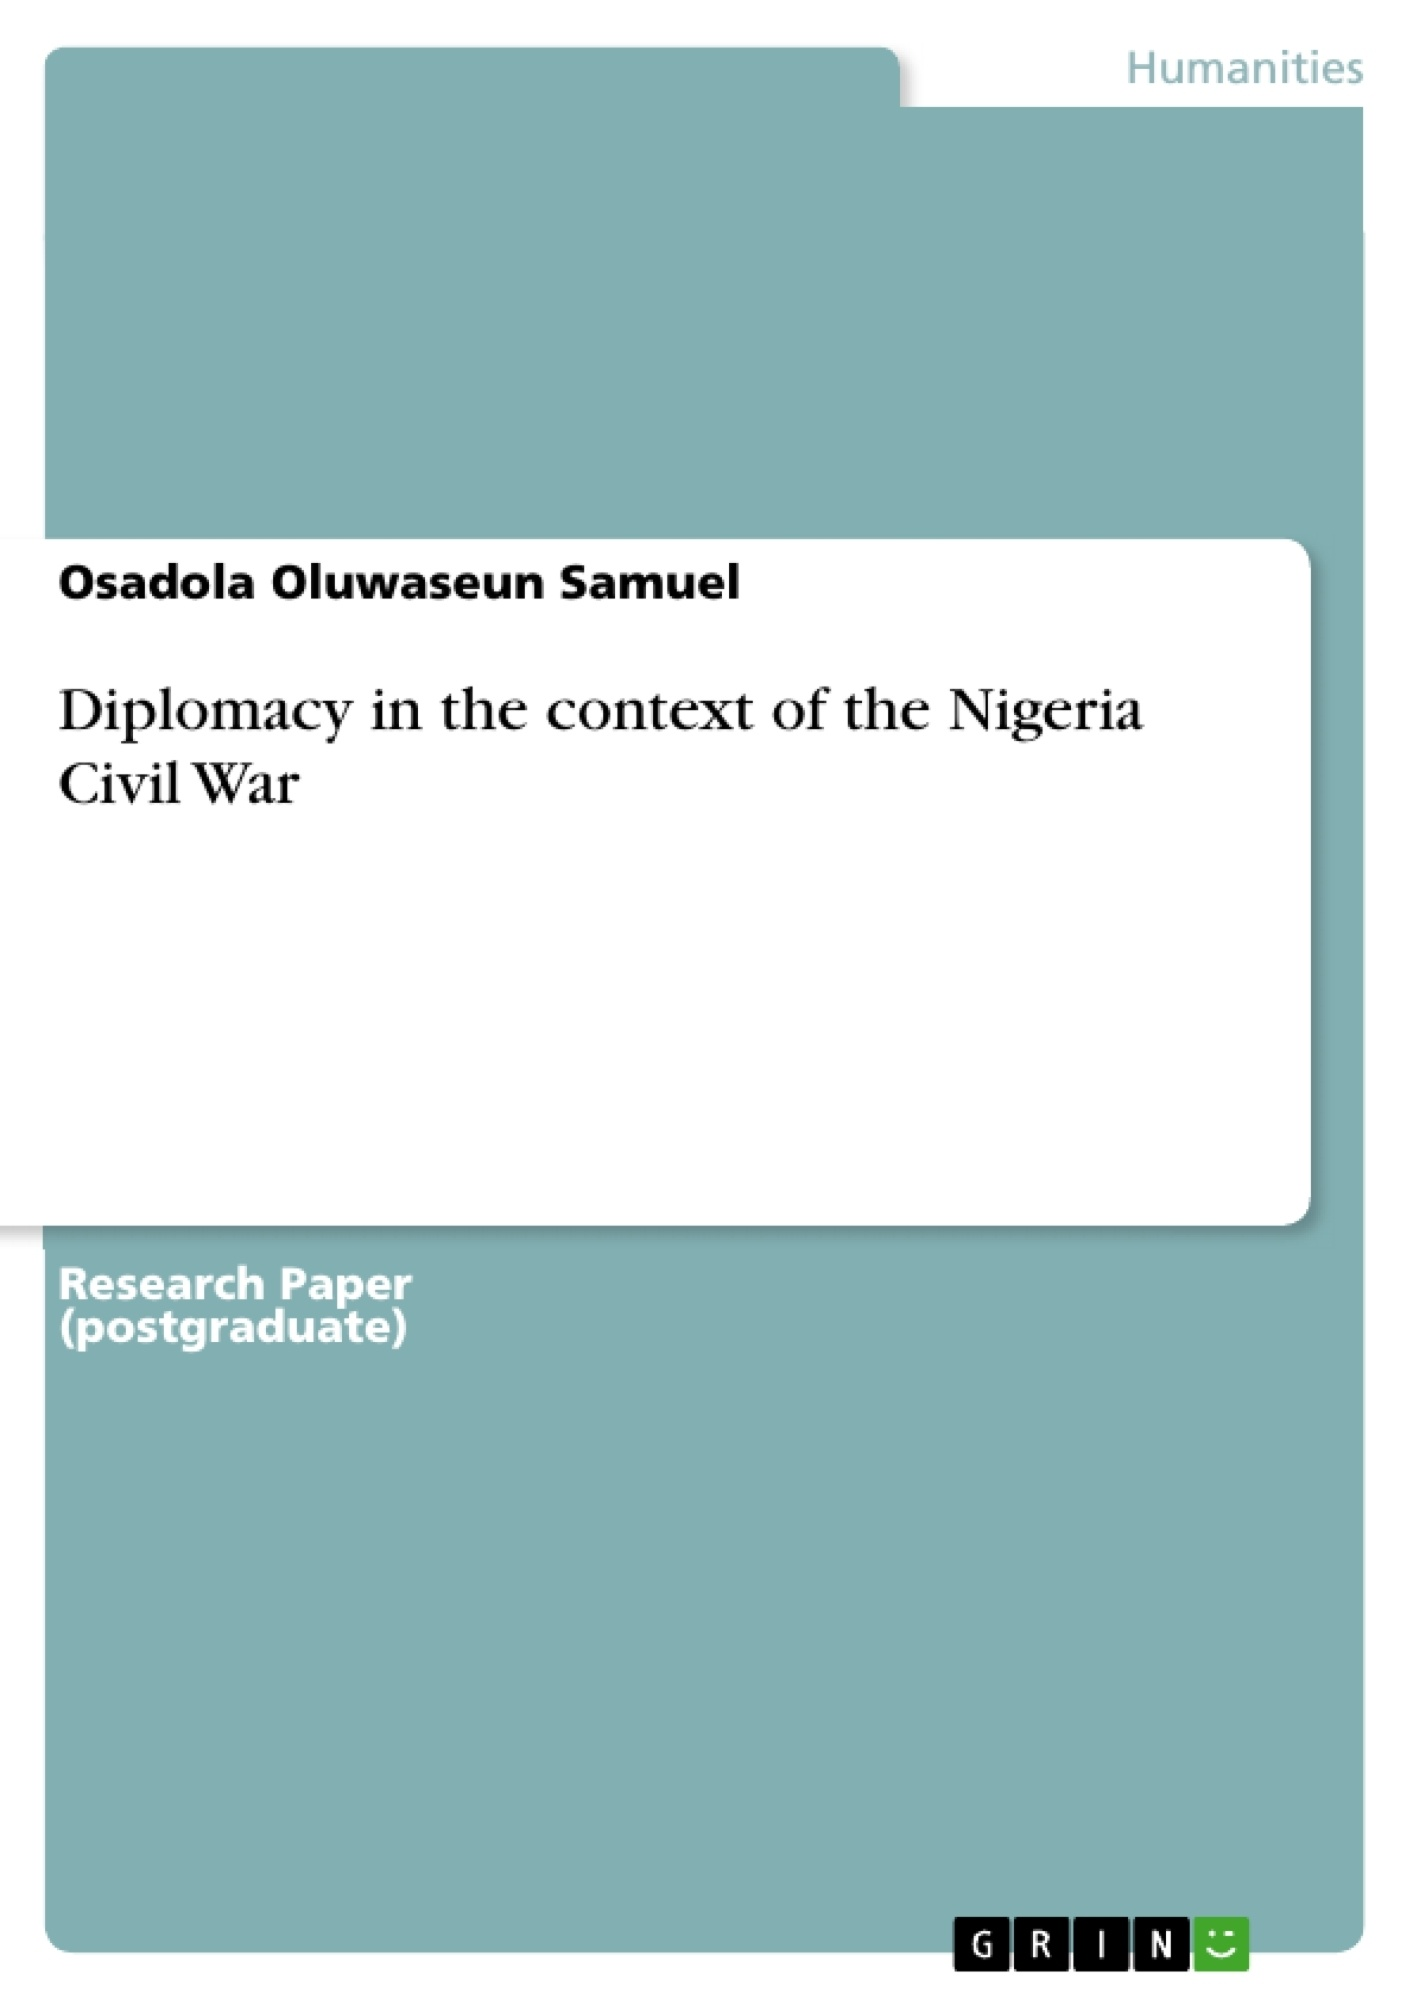 resume When Did The Civil War In China Resume diplomacy in the context of nigeria civil war publish your upload own papers earn money and win an iphone x